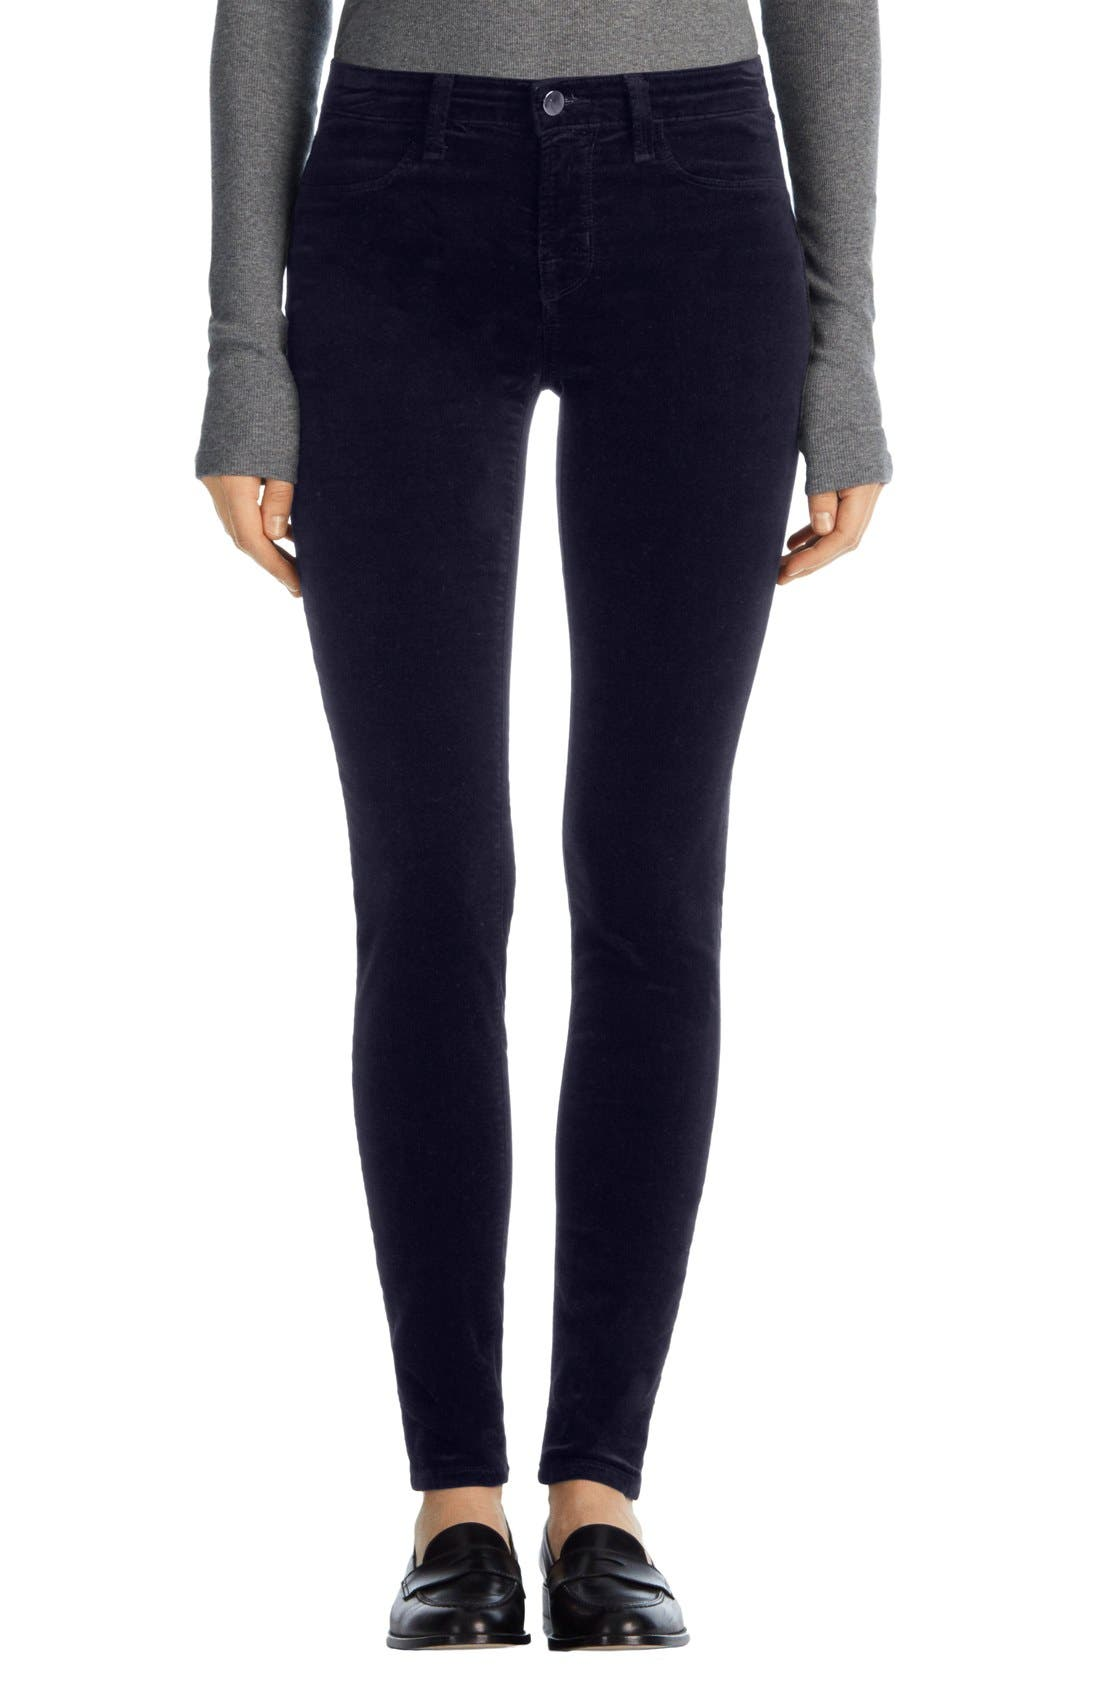 Alternate Image 1 Selected - J Brand '815' Mid Rise Velveteen Super Skinny Jeans